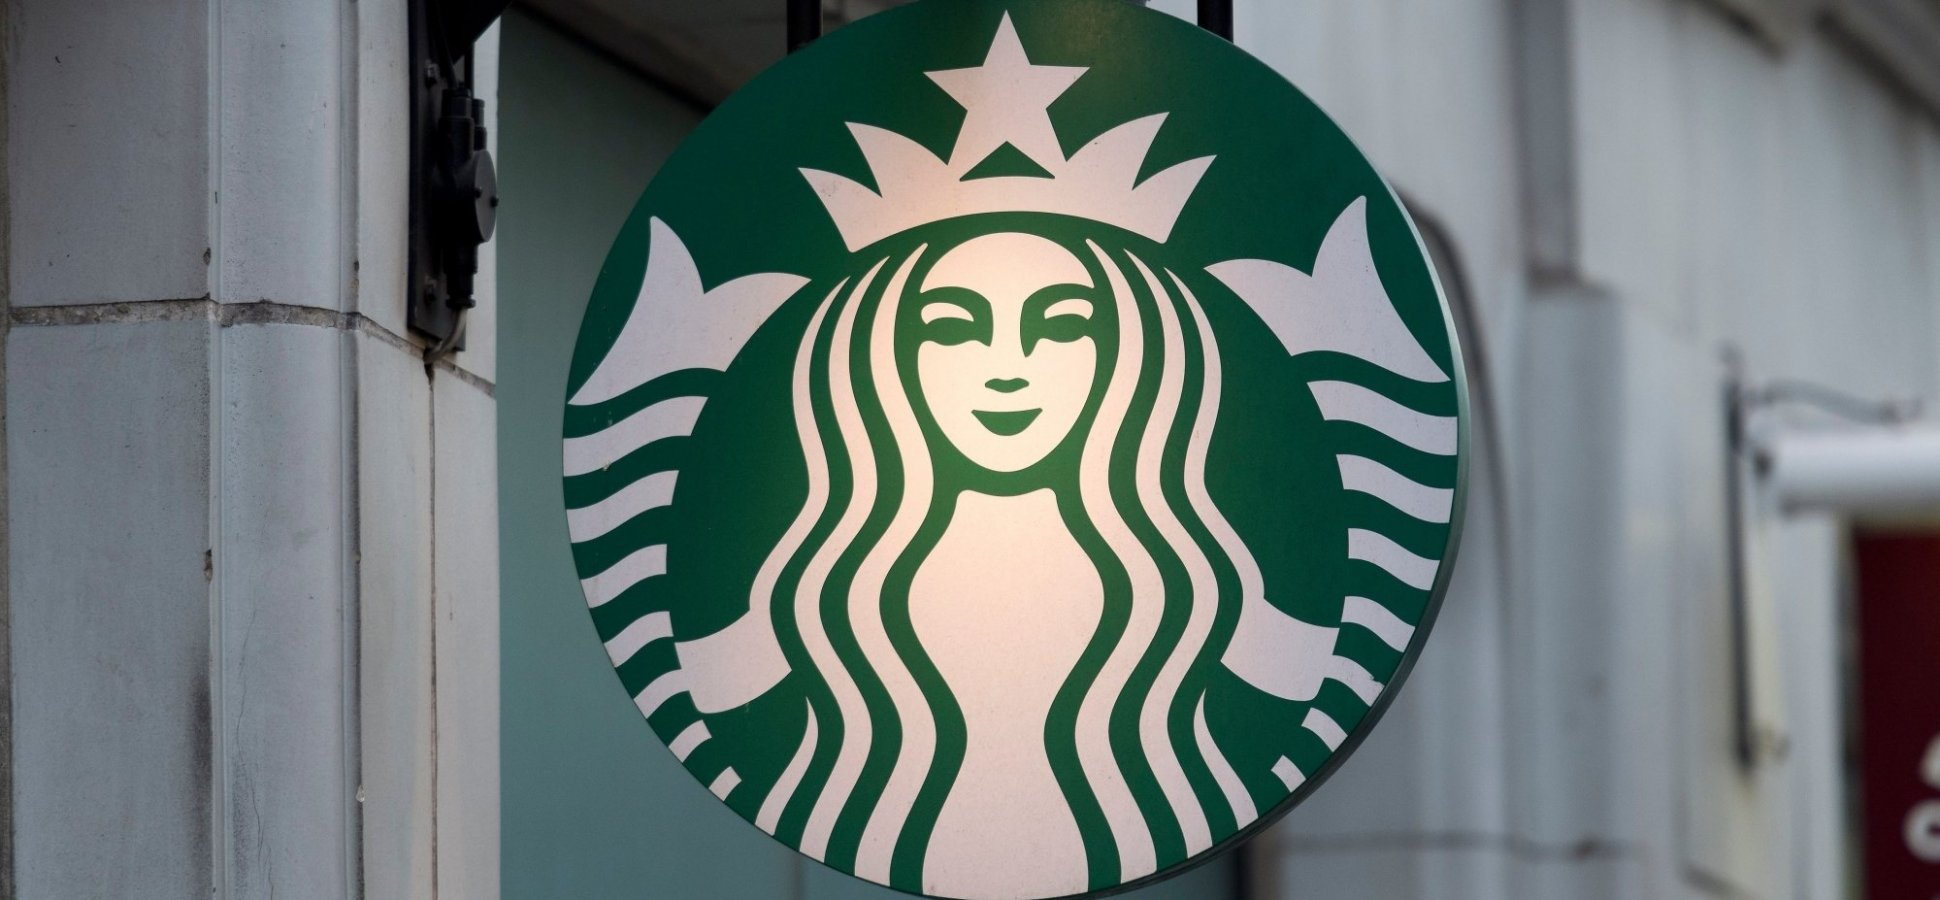 Starbucks Just Ripped Up 15 Pages Of Employee Rules. Customers Will Likely Notice